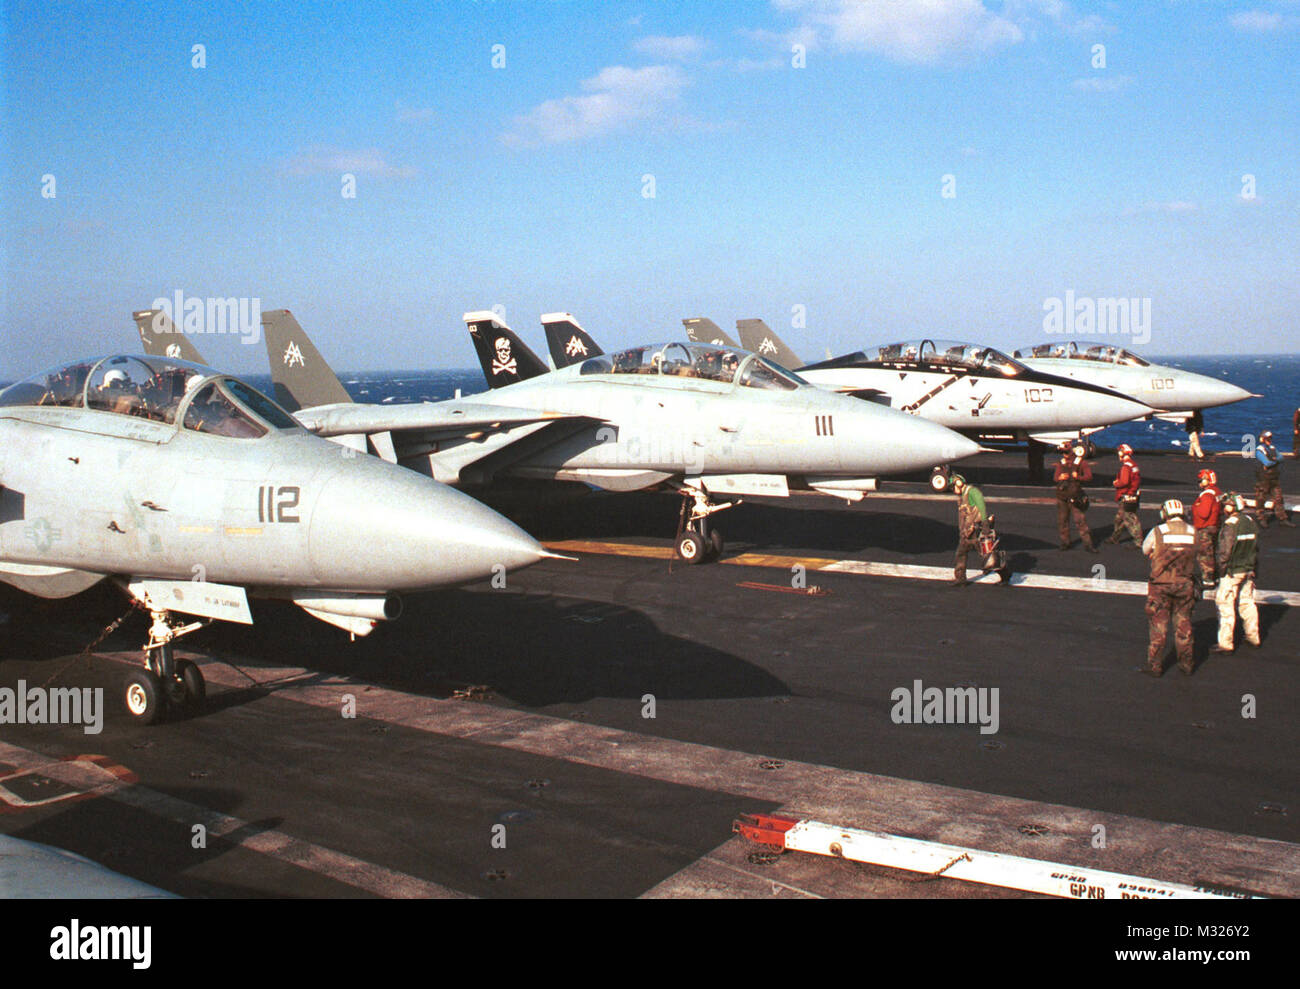 001021-N-2227W-002 ABOARD USS GEORGE WASHINGTON (Oct. 21, 2000) -- Members from the 'Jolly Rogers' of Fighter - Stock Image